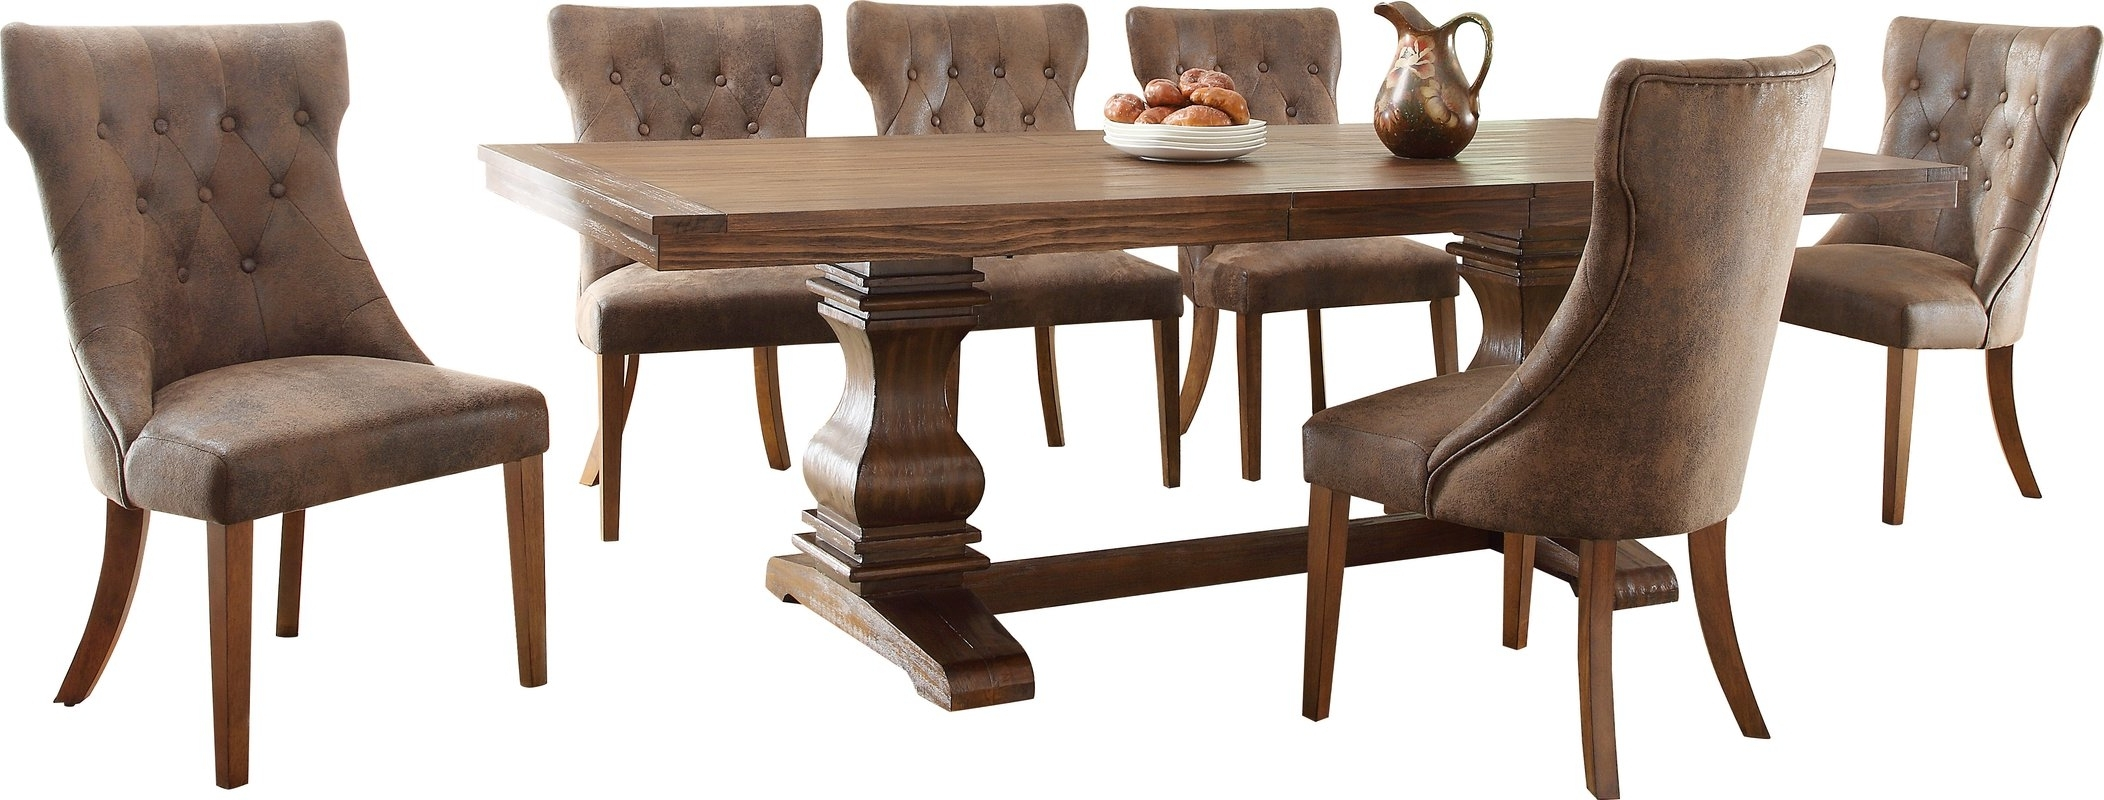 Selecting Dark Wood Round Dining Tables – Home Decor Ideas For Well Known Wood Dining Tables (View 19 of 25)